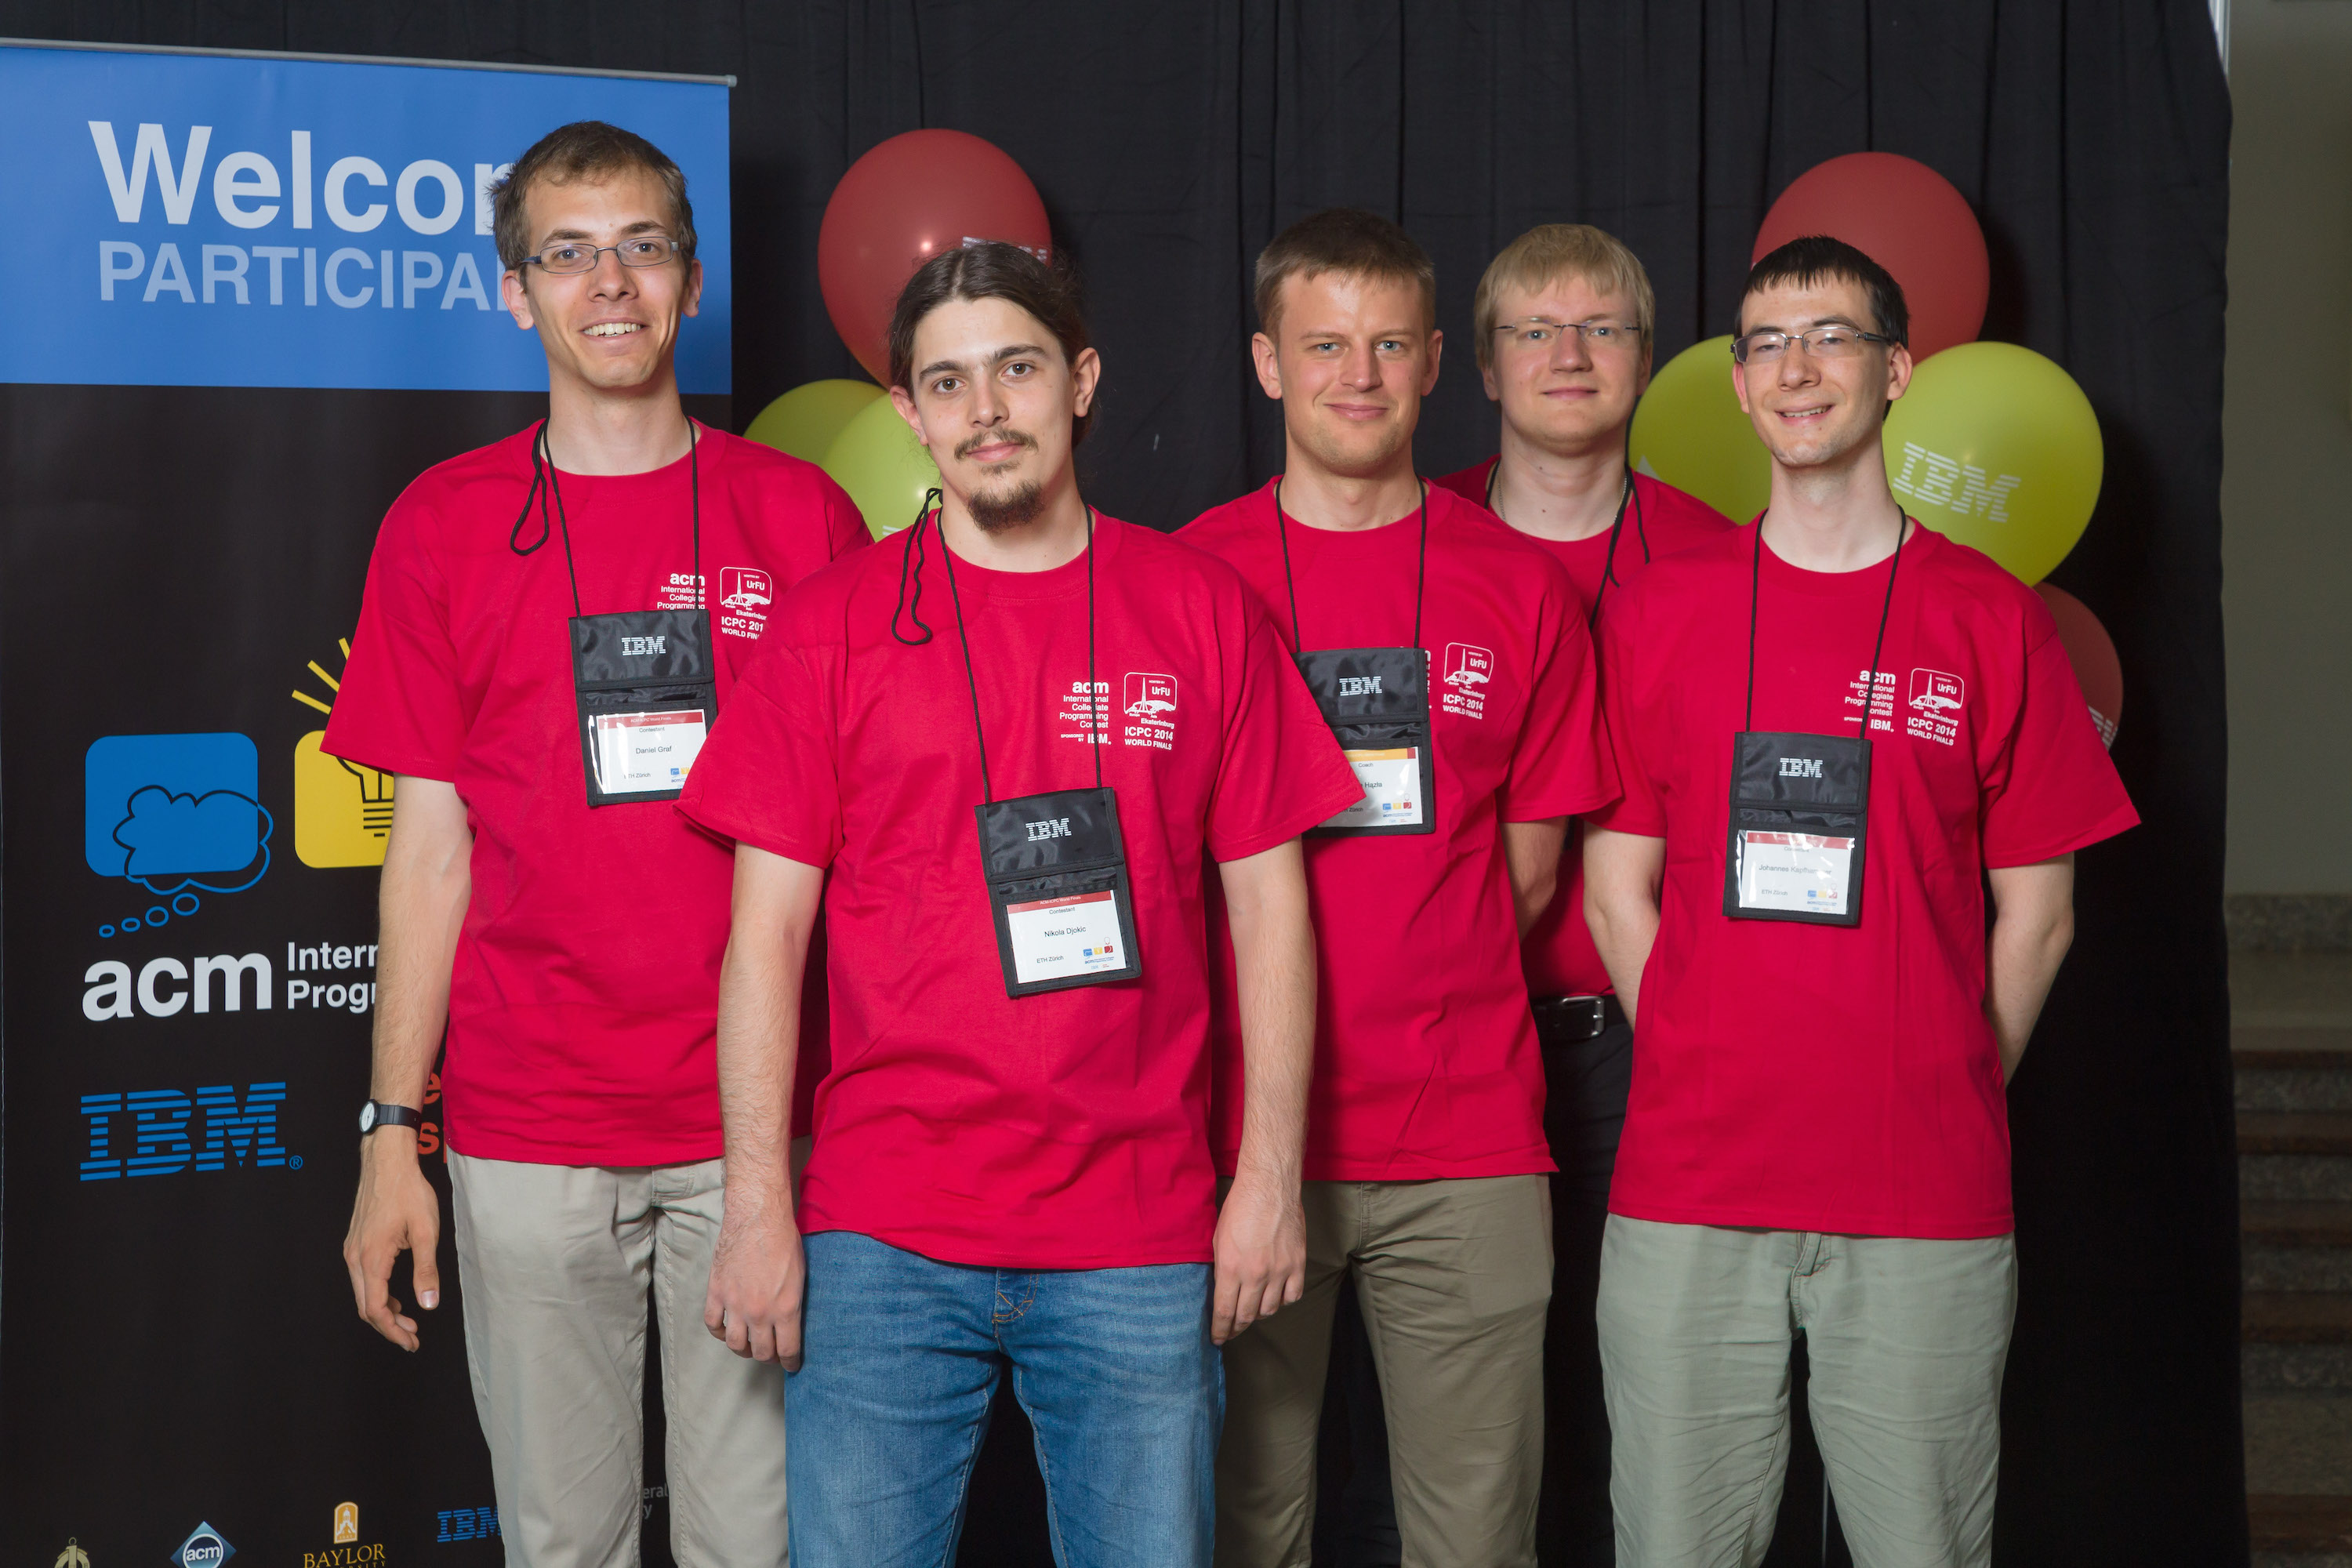 ETH-Team (from left to right): Daniel Graf, Nikola Djokic, Jan Hązła (coach), Vladimir Serbinenko (coach), Johannes Kapfhammer (Image: Bob Smith, Hans Domjan, ACM ICPC)